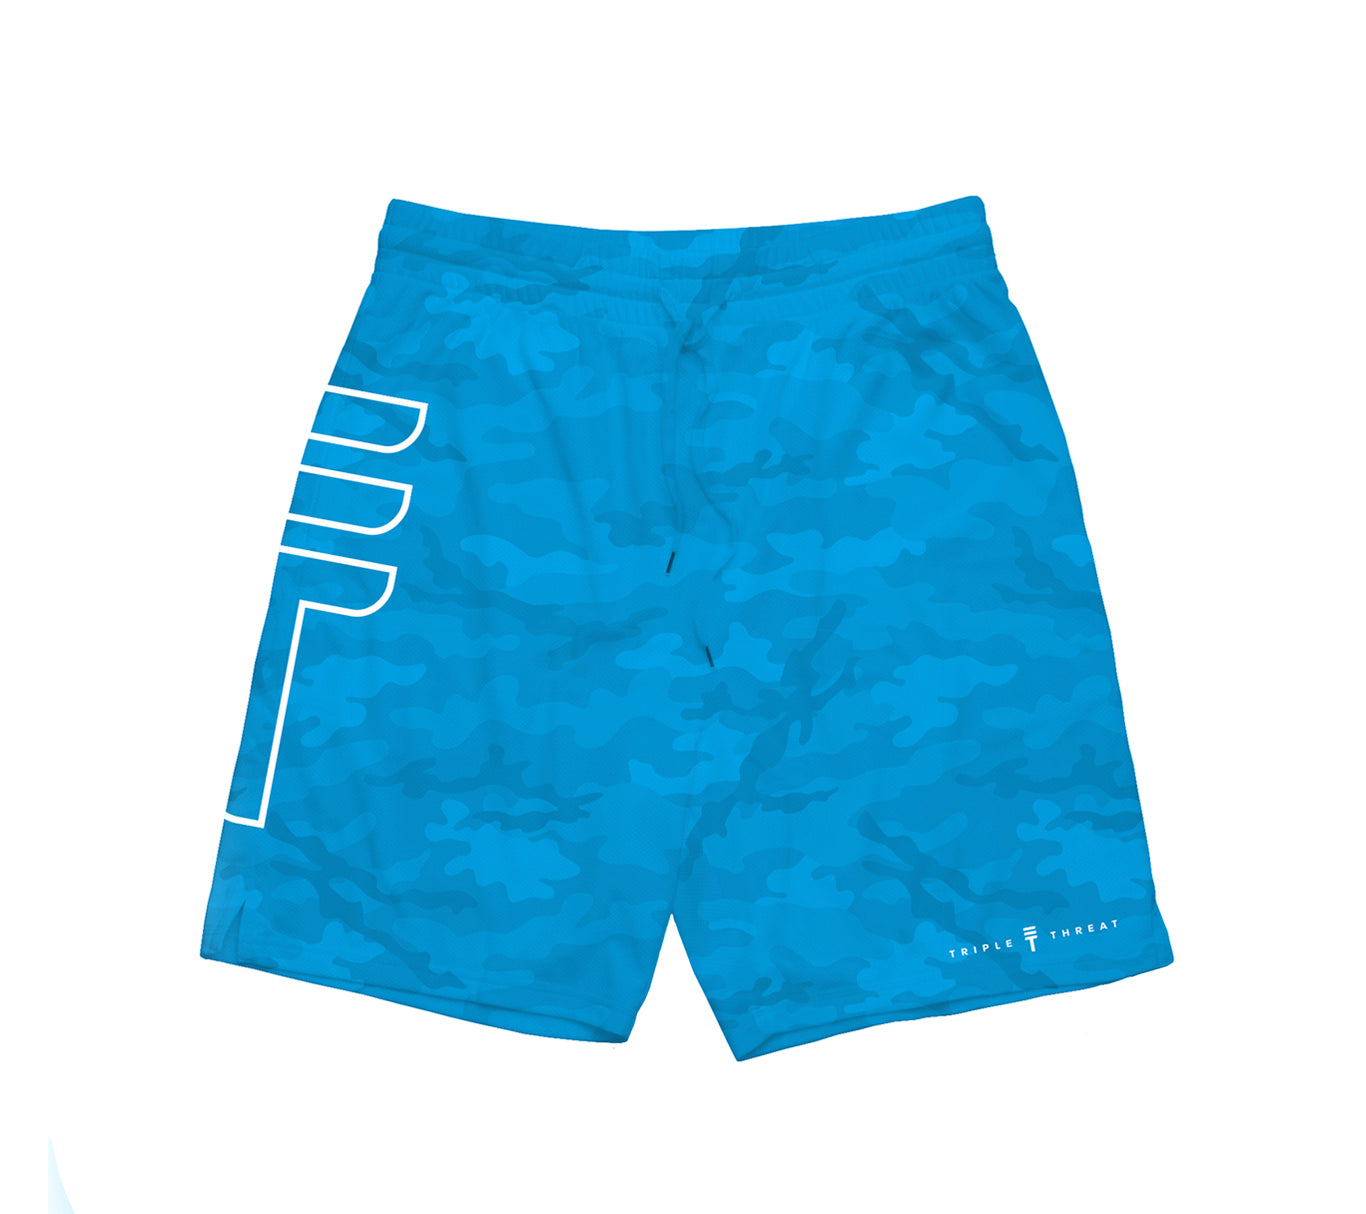 TRIPLE THREAT BIG LOGO SHORTS - BLUE